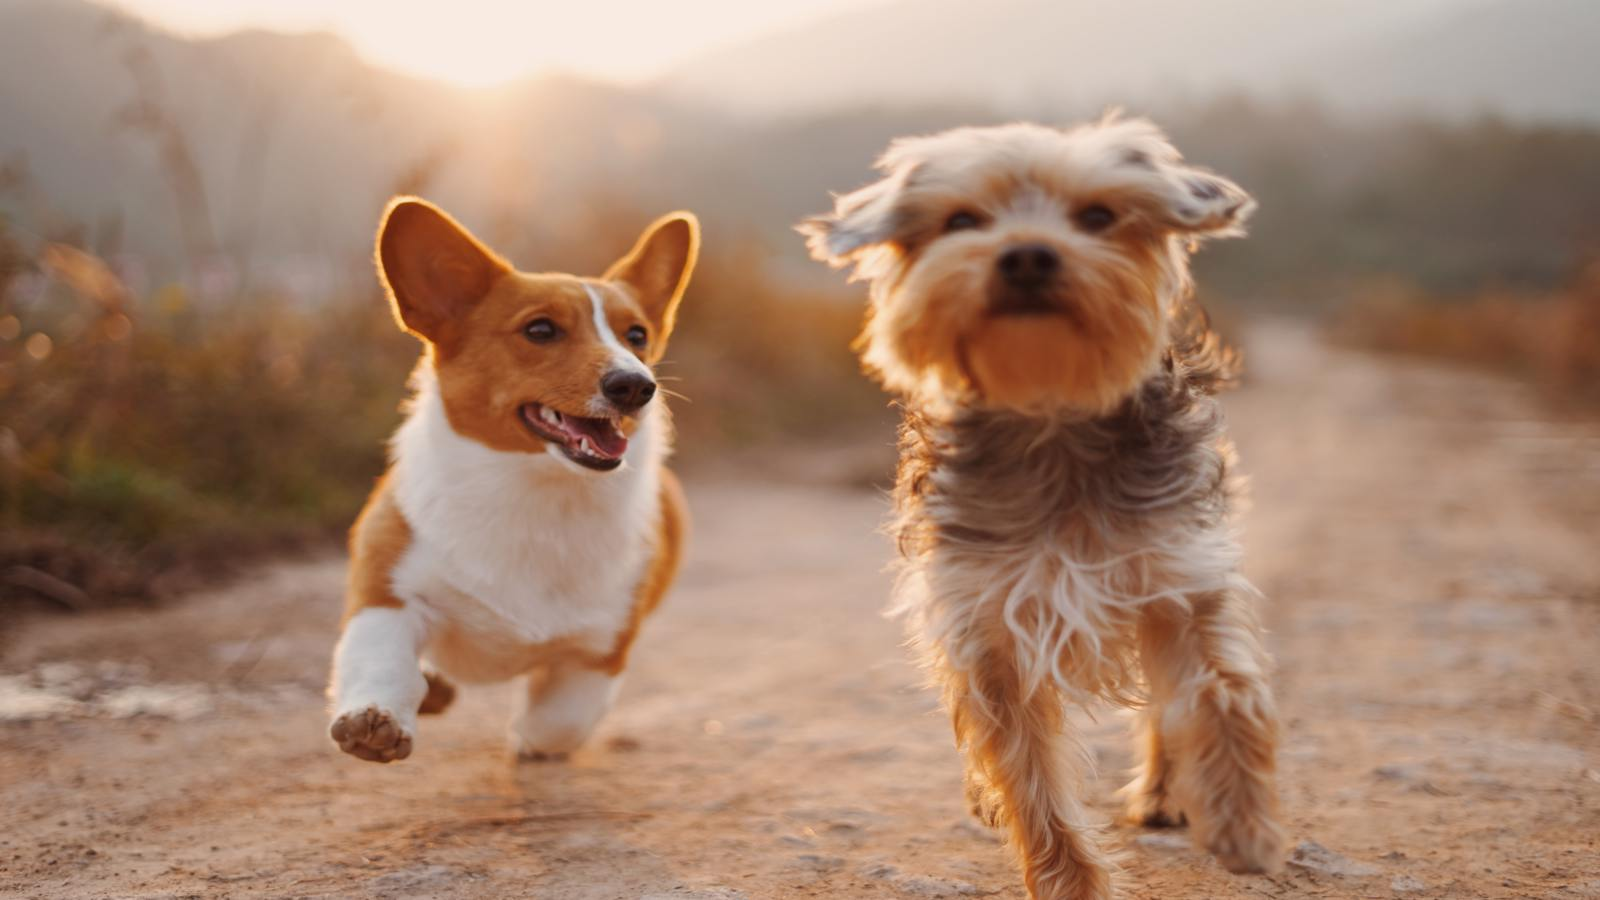 15 Spanish Dog Commands: How To Make Friends With Dogs (And Their Owners)